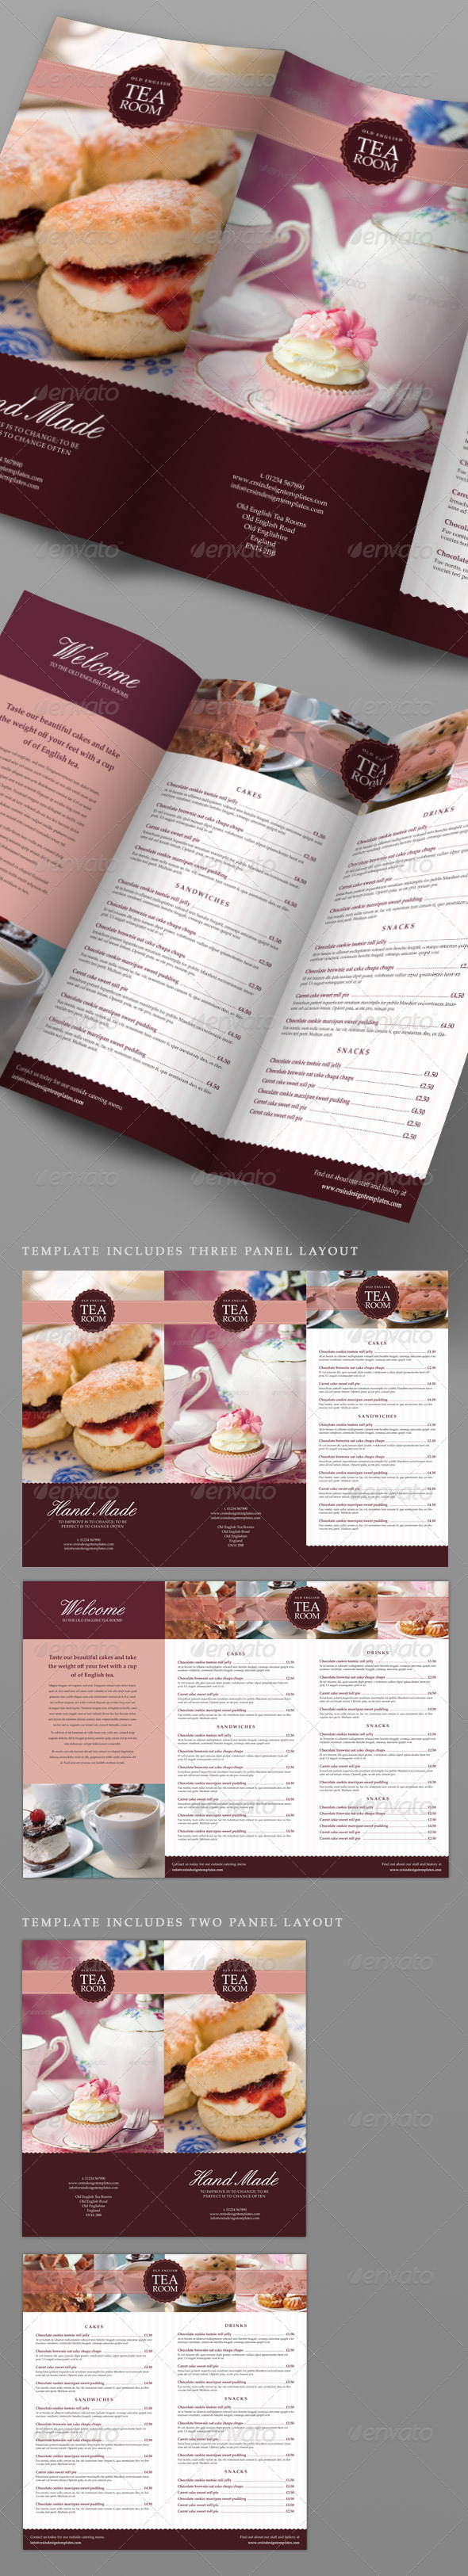 Tea Room Coffee Shop Menu - Food Menus Print Templates